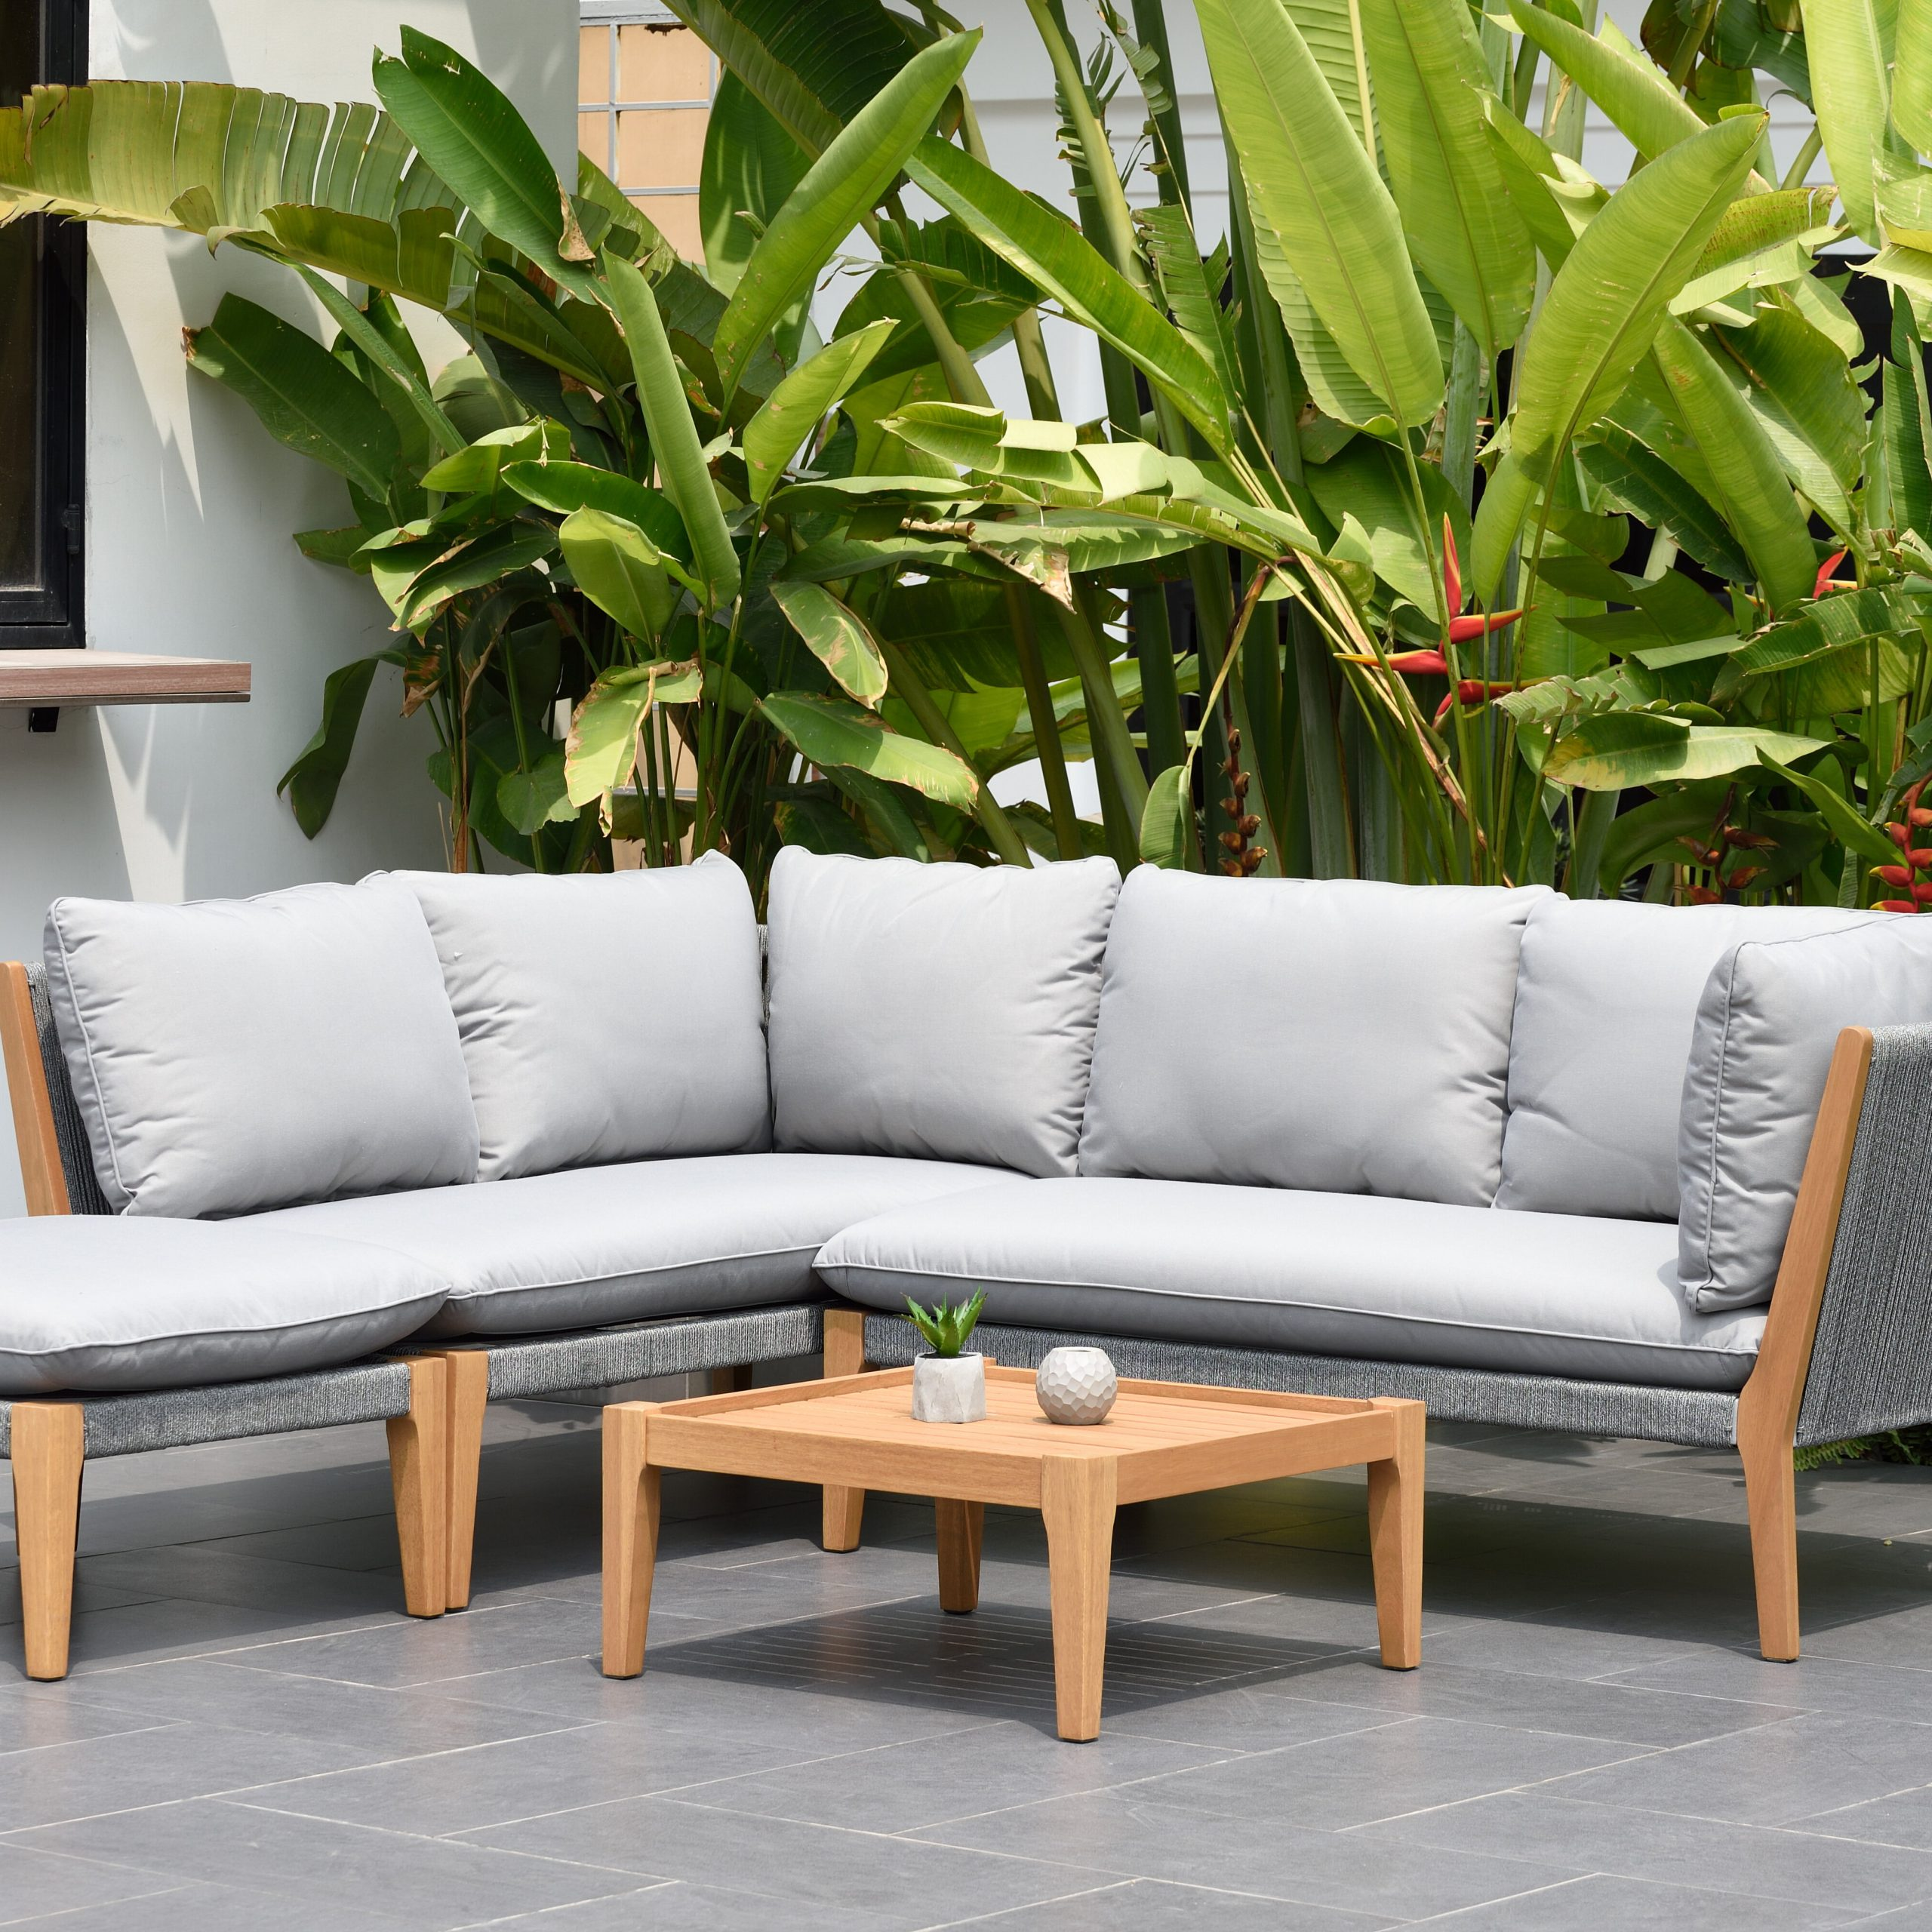 Latest Carina 4 Piece Sectionals Seating Group With Cushions Pertaining To Olinda 4 Piece Teak Sectional Seating Group With Cushions (View 12 of 25)